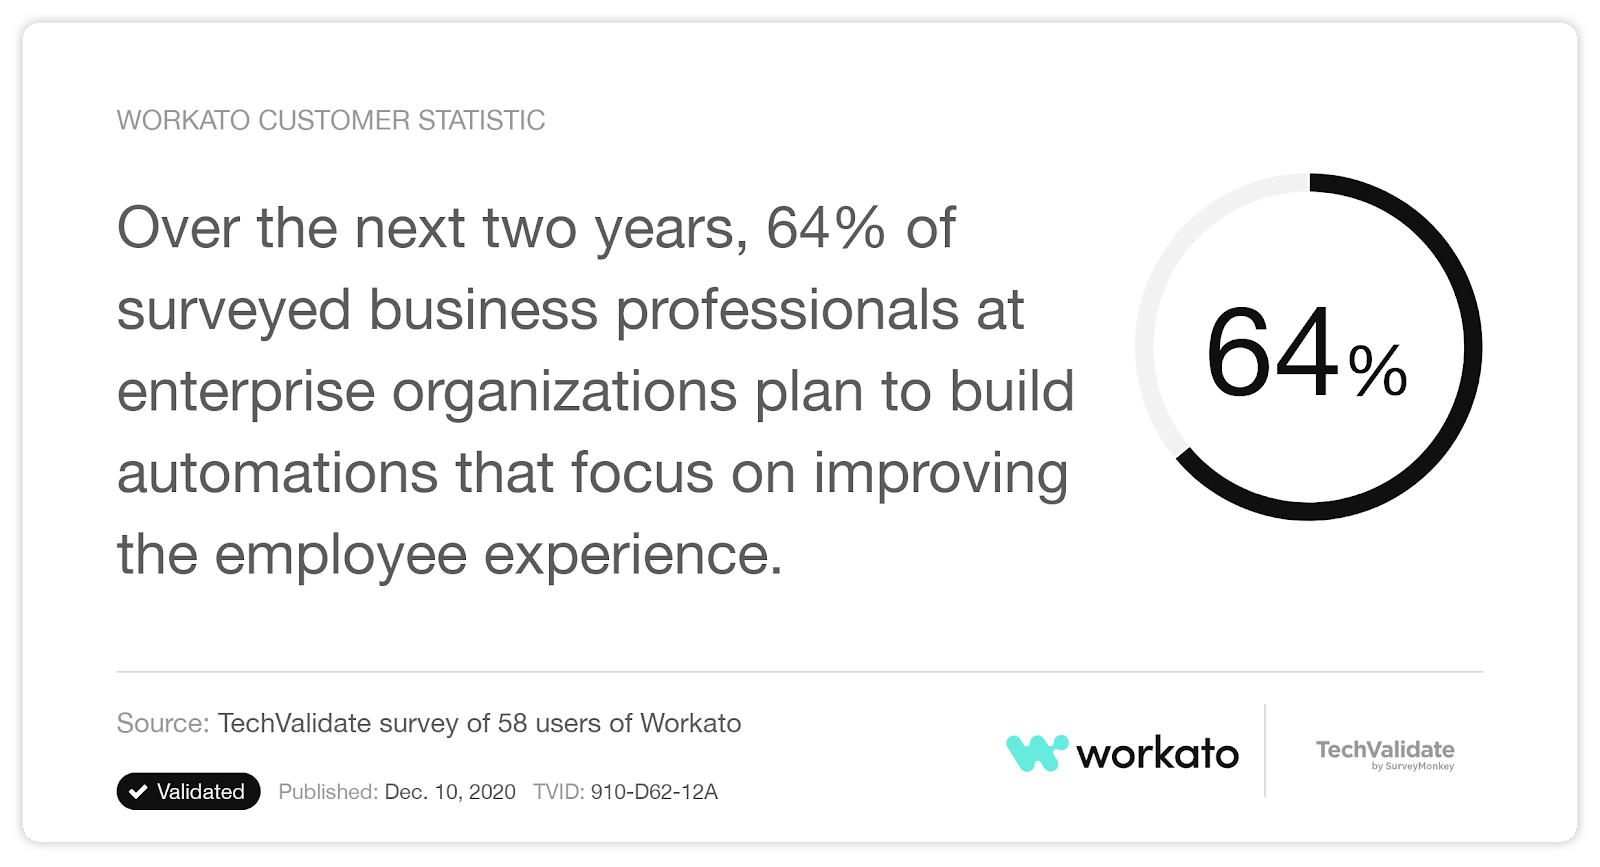 A stat that reveals a strong desire for building employee-focused automations